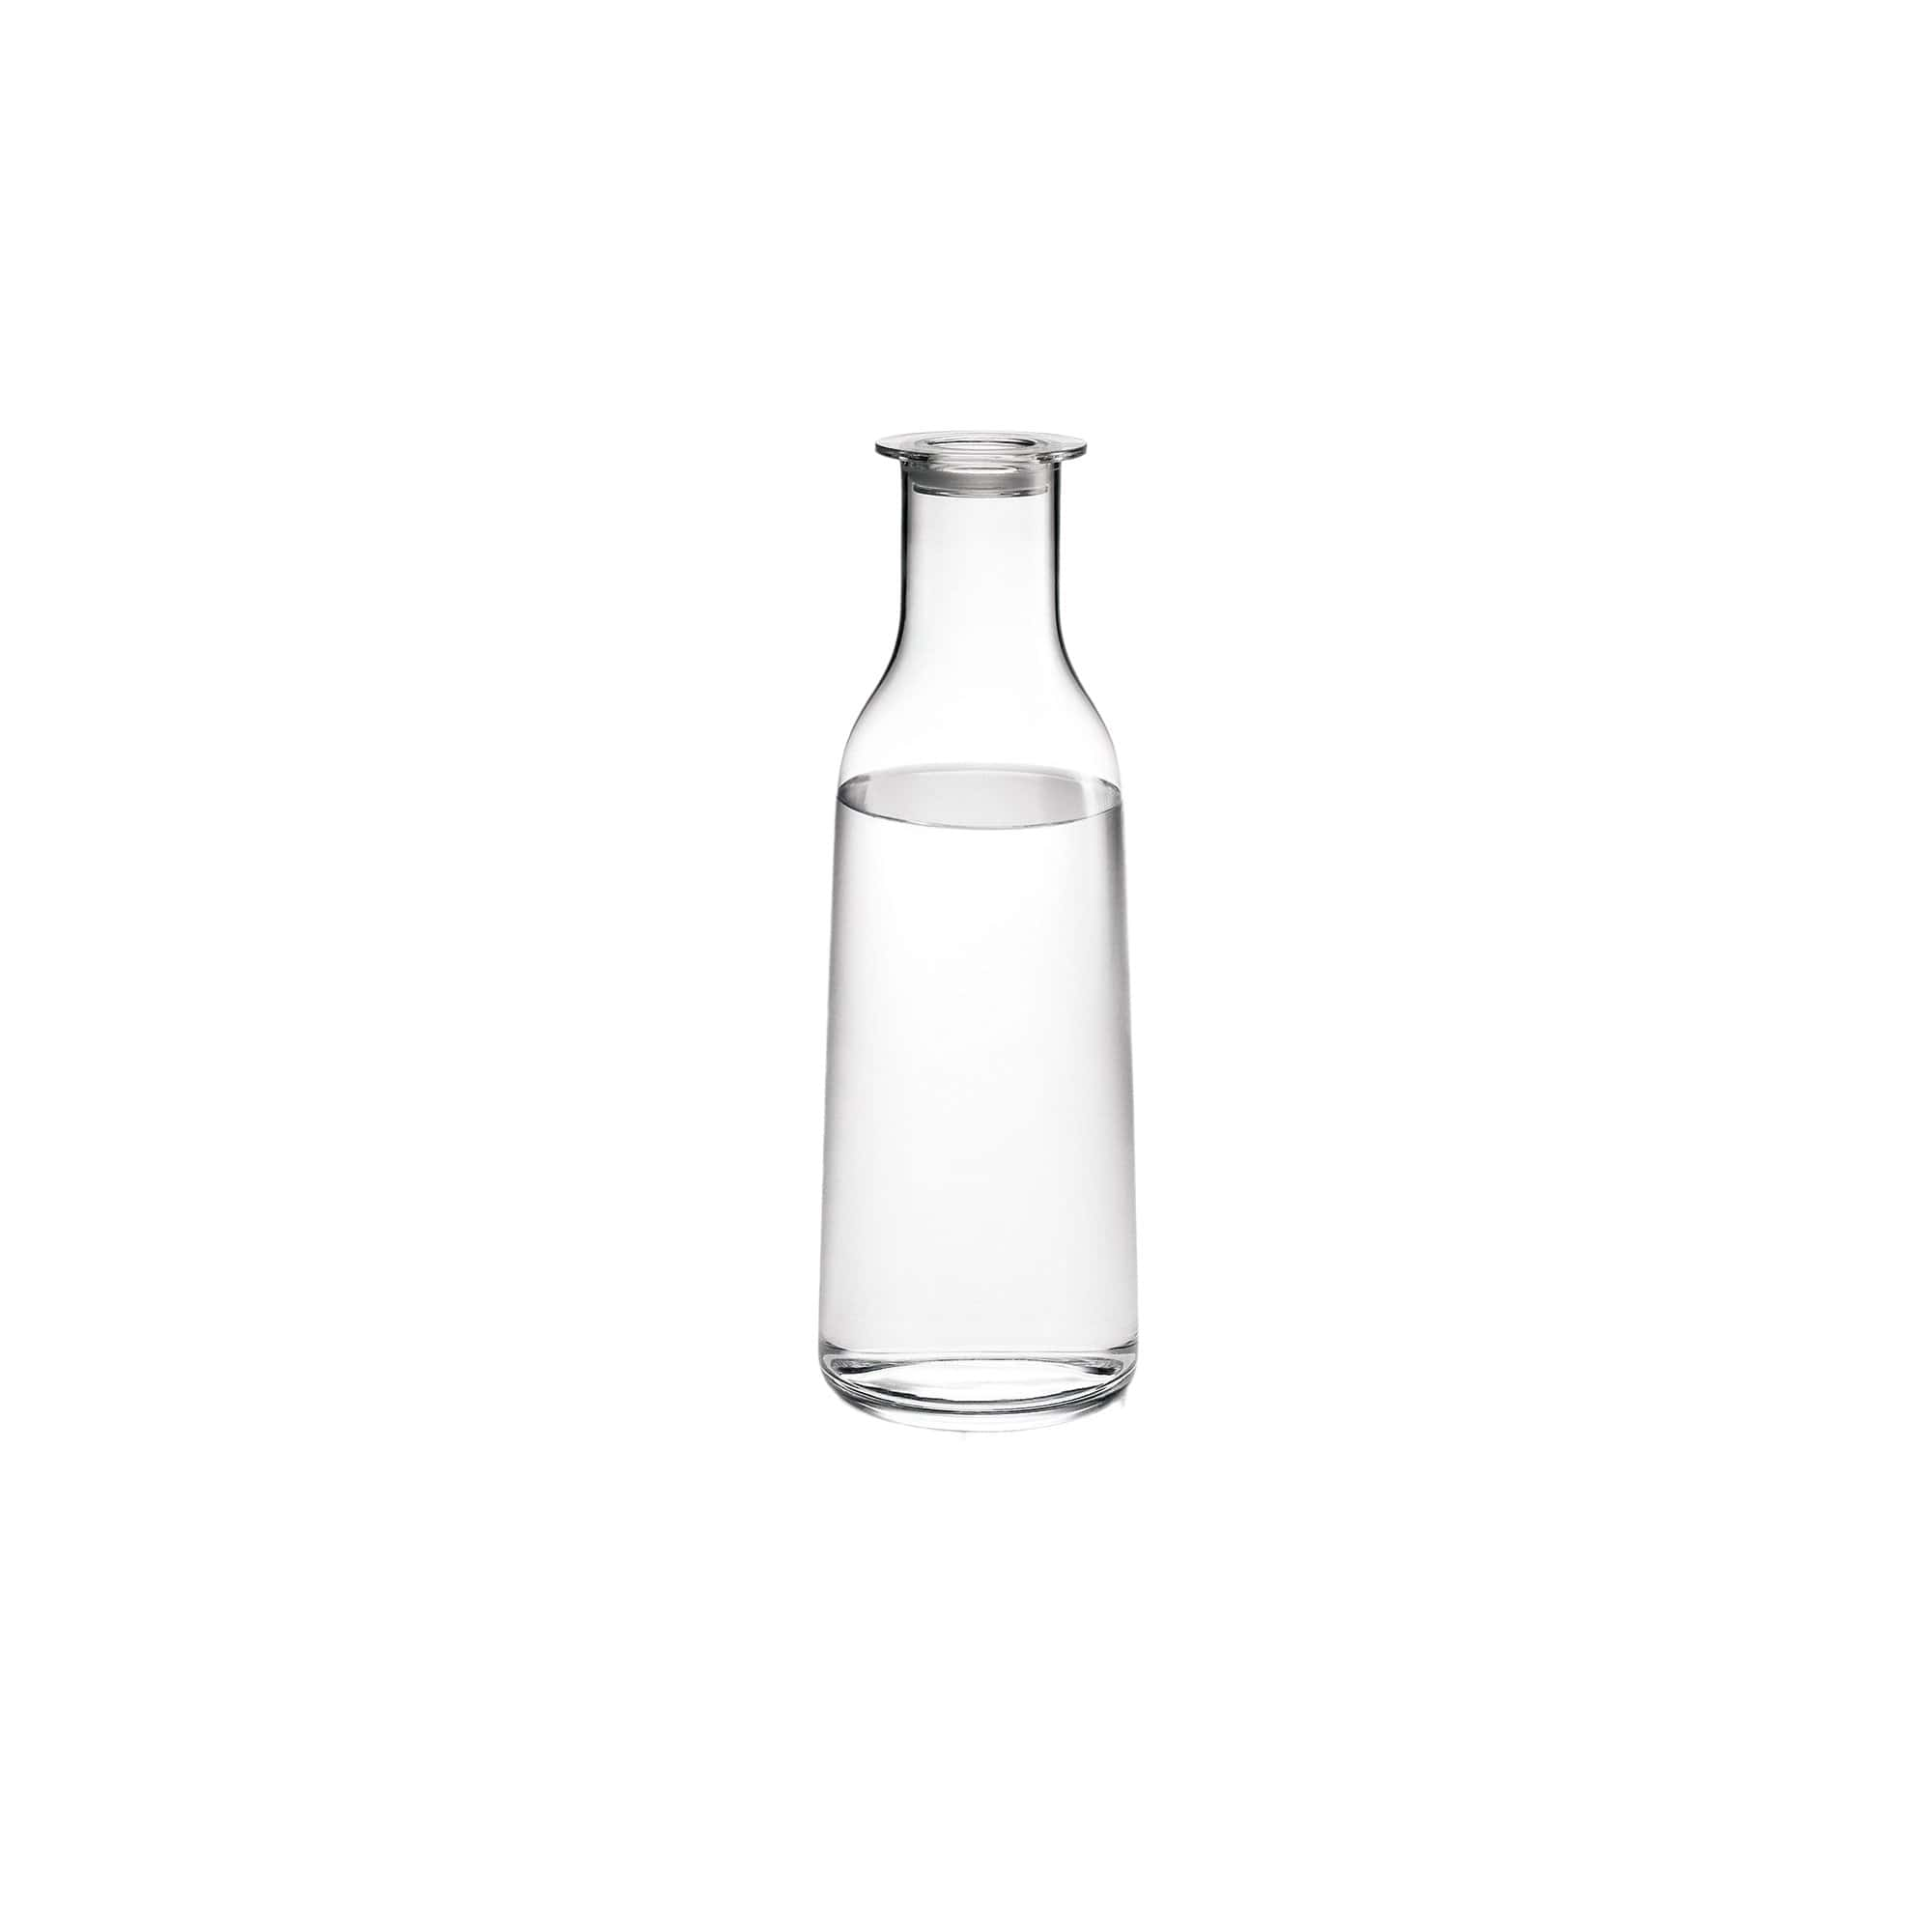 Holmegaard Glassware Minima Bottle - 30.4 fl. oz. Holmegaard Minima Bottle with lid, Medium